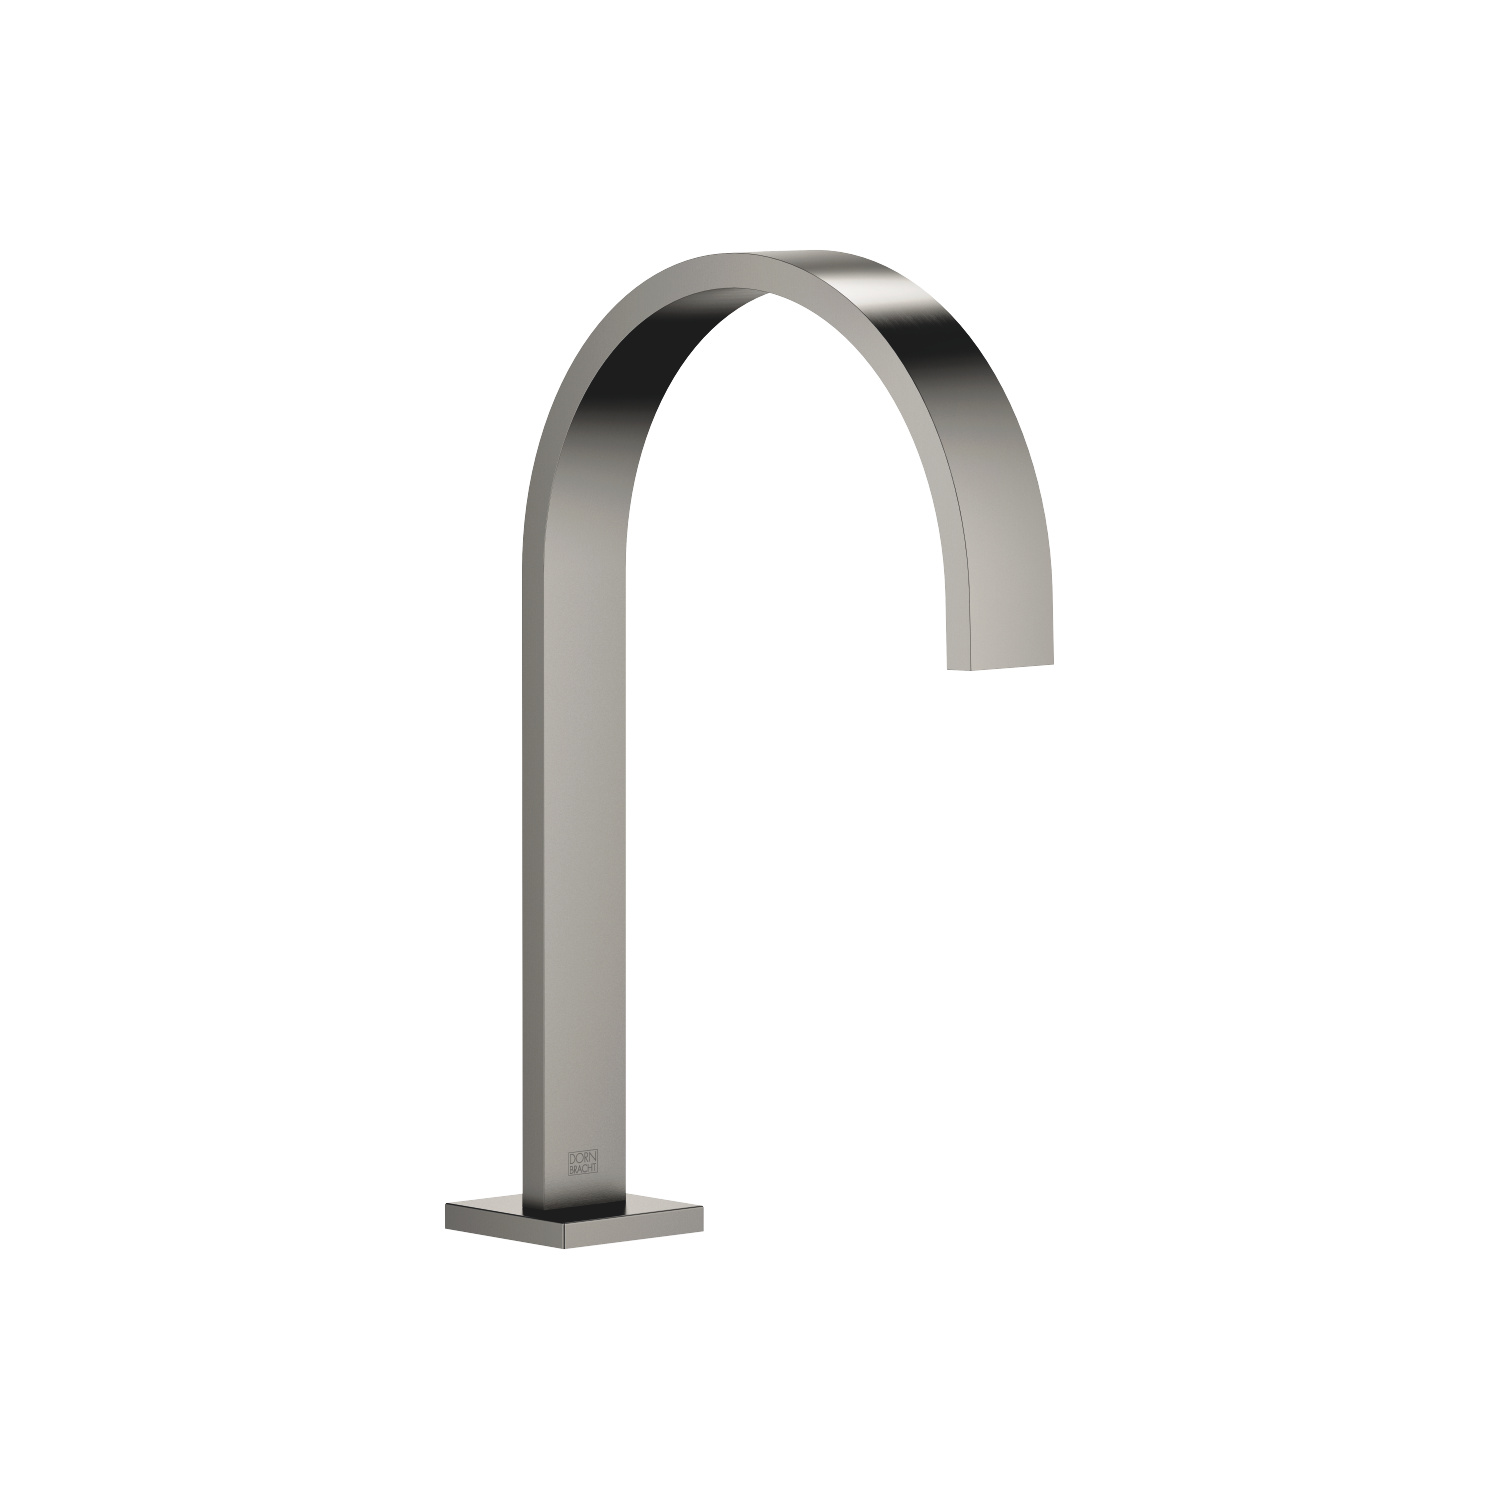 Deck-mounted basin spout with pop-up waste - Dark Platinum matt